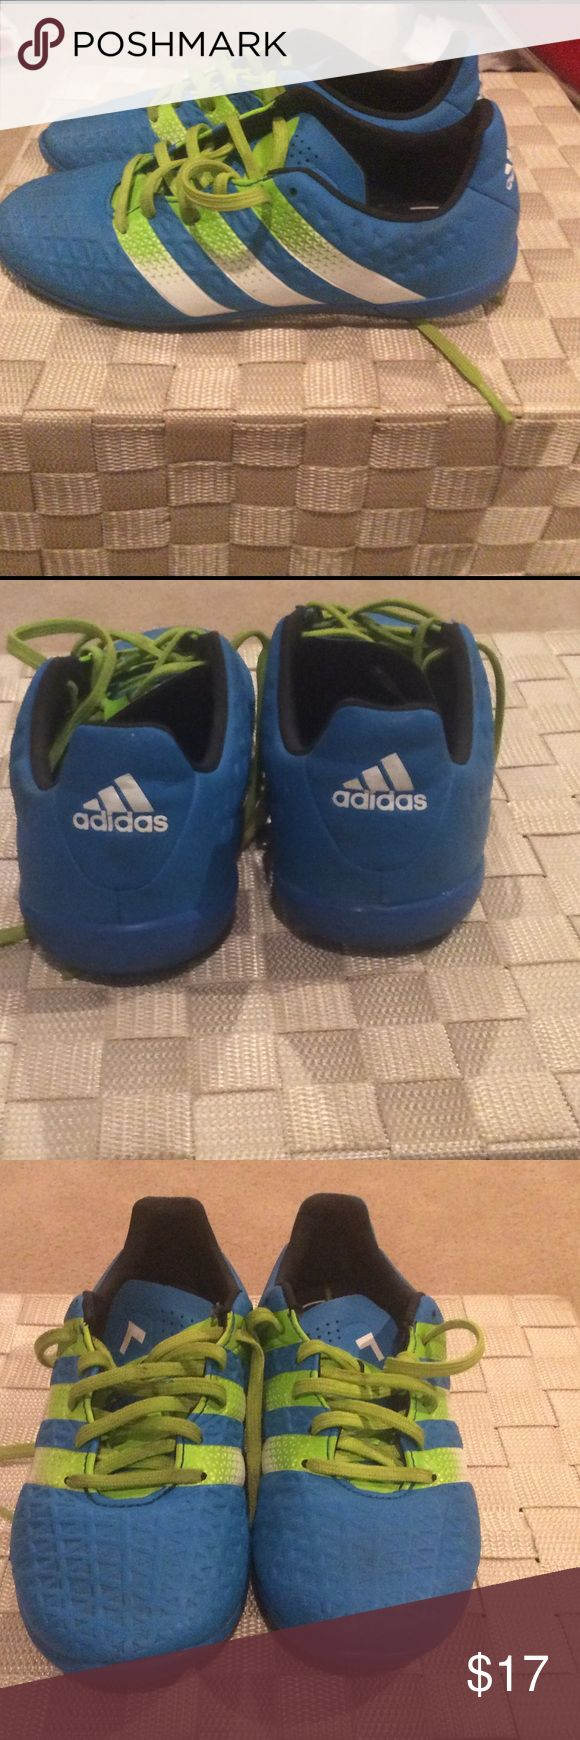 Youth Indoor Soccer Cleats Used less than 1 season - great condition.  Will clean laces before shipping Adidas Shoes Sneakers